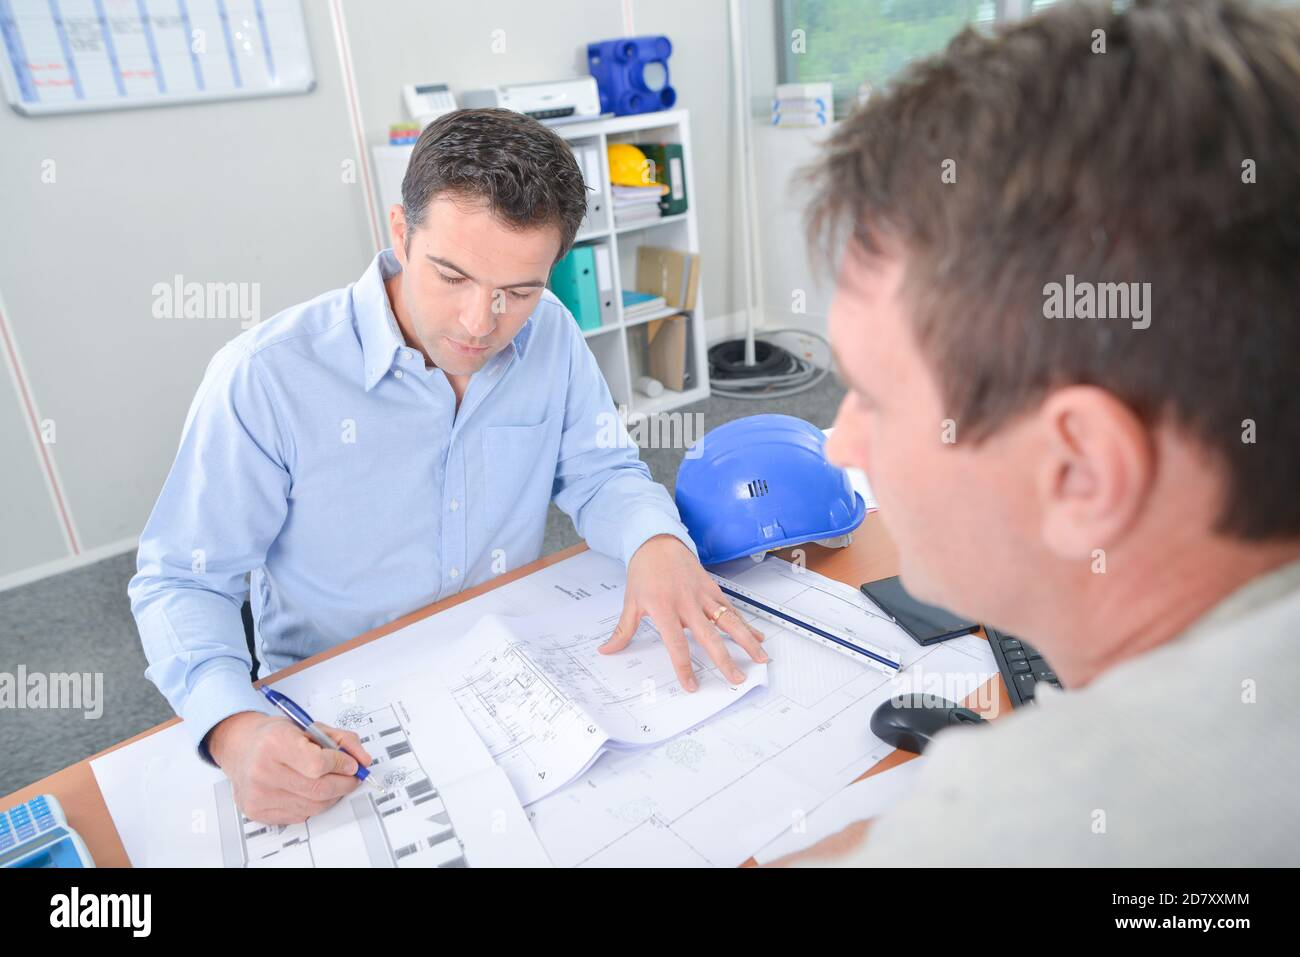 Two men at desk looking at blueprints Stock Photo